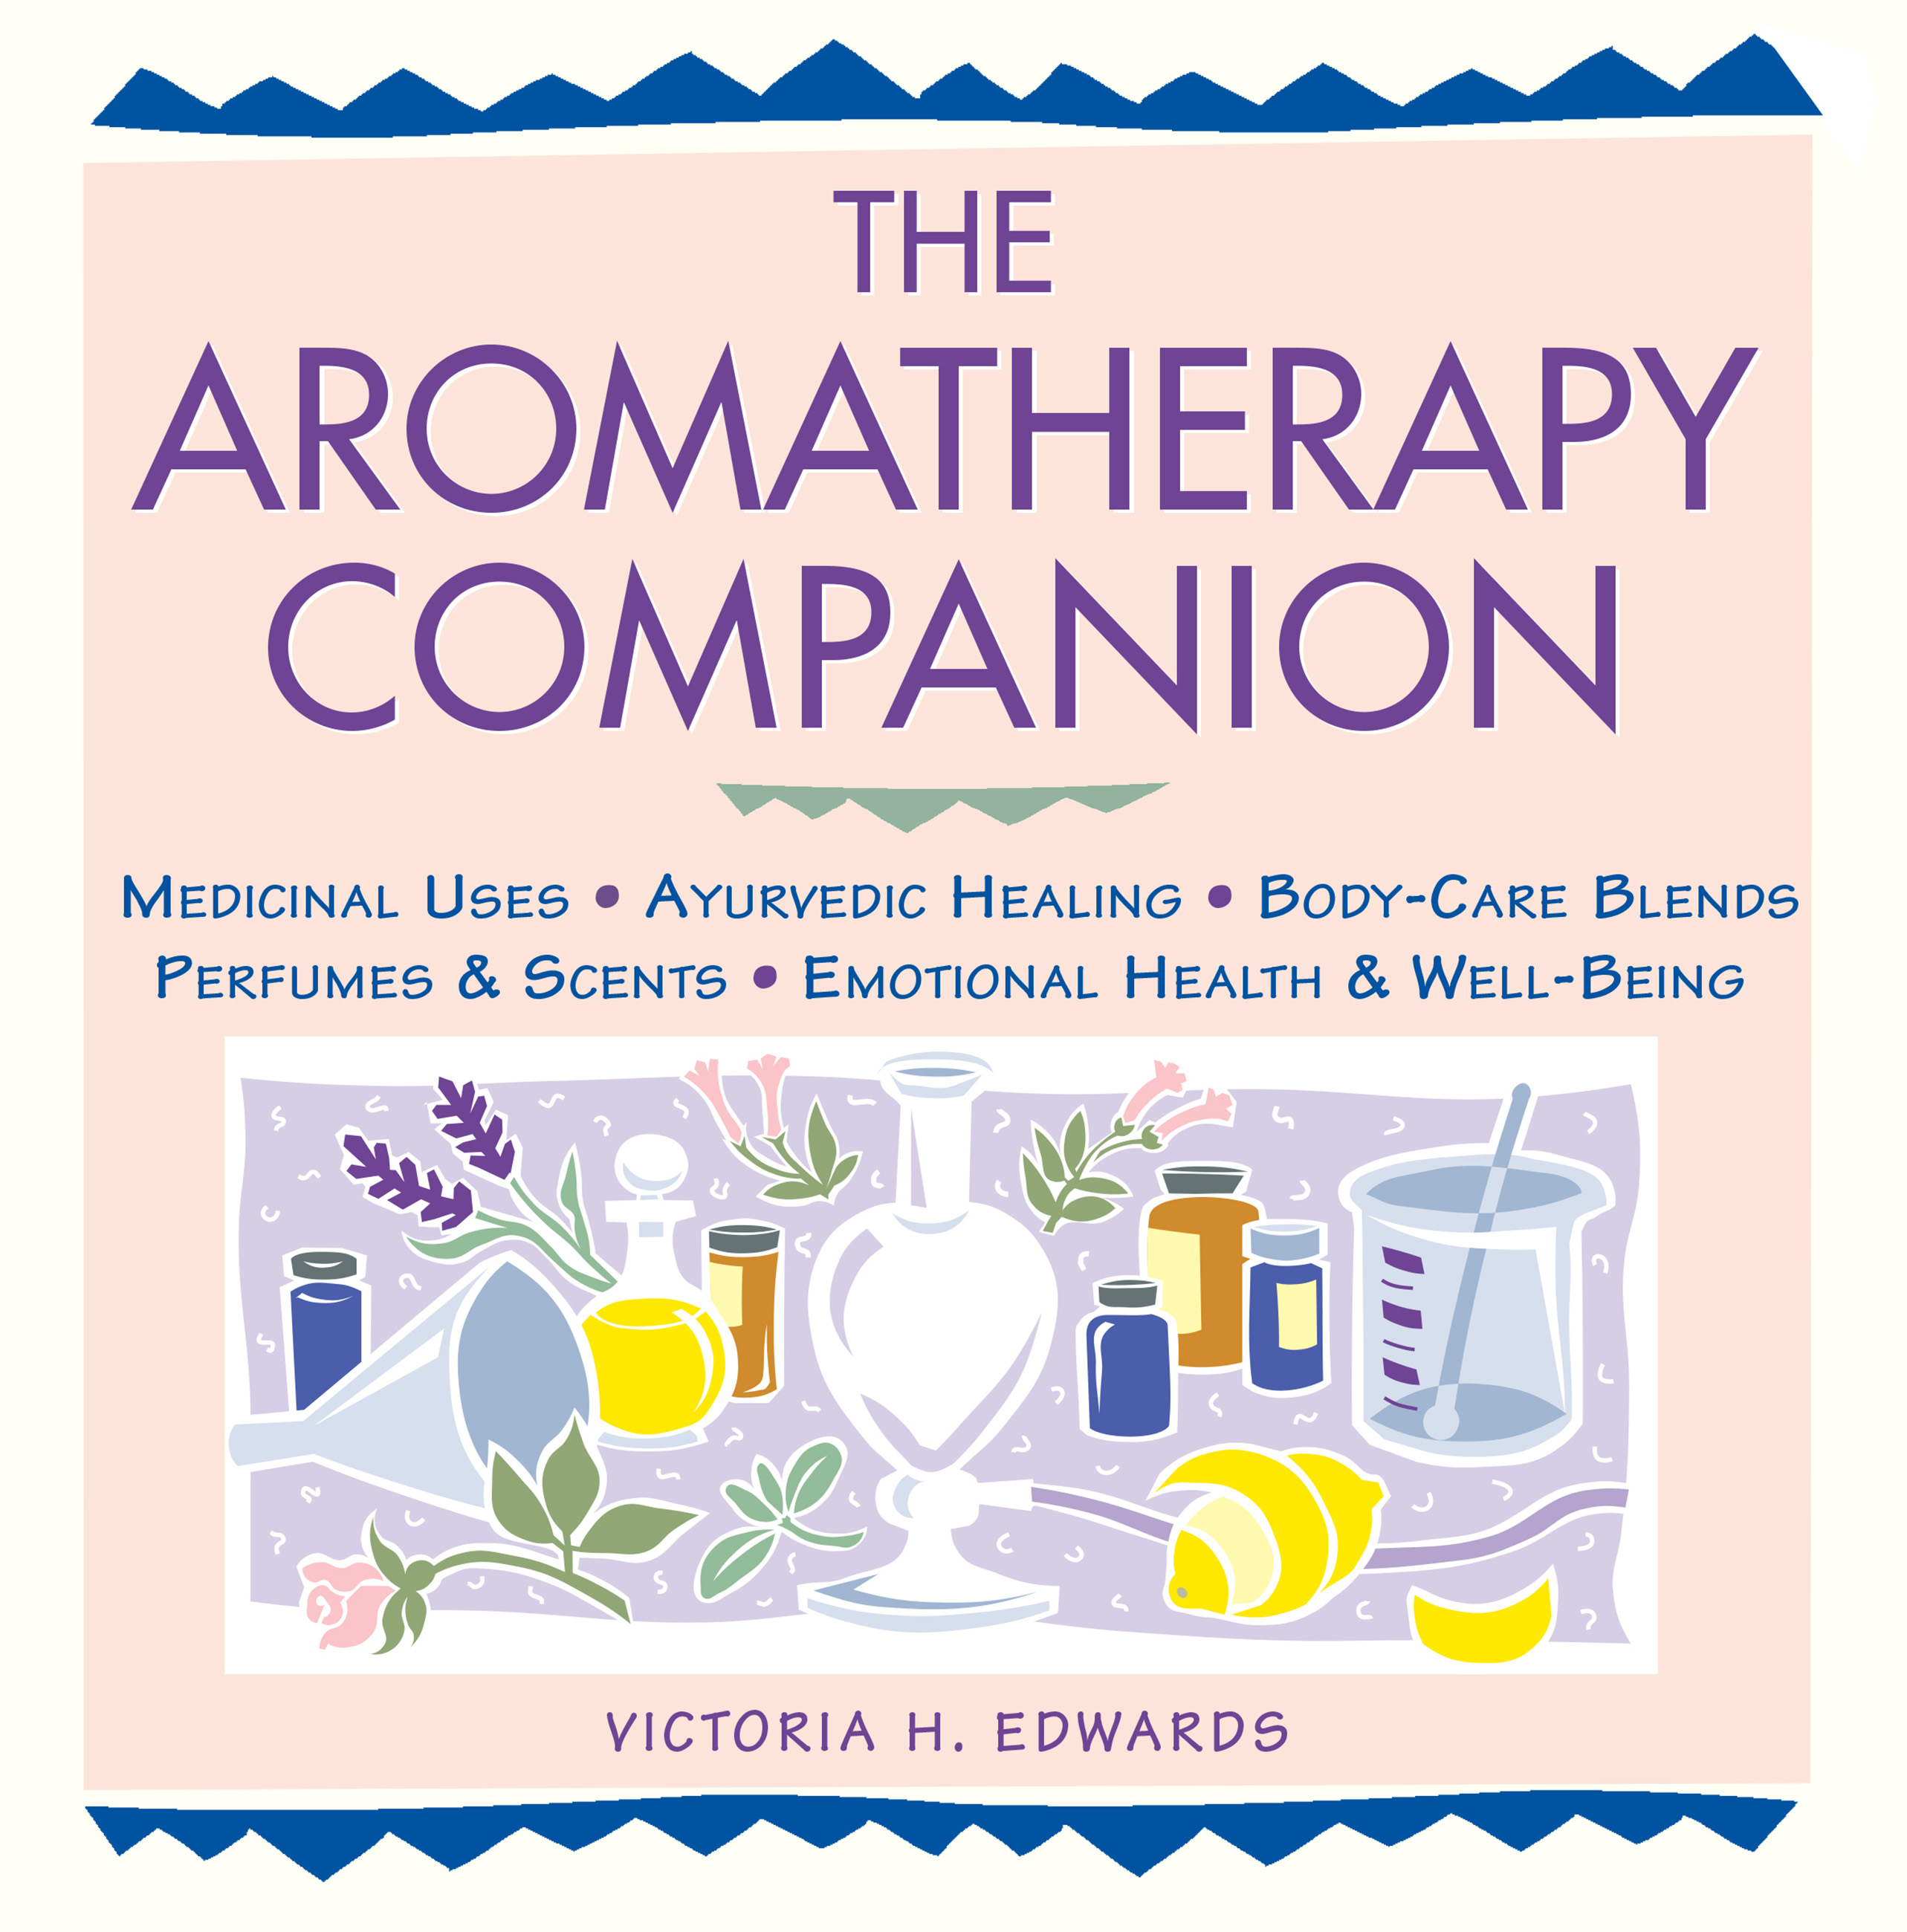 The Aromatherapy Companion Medicinal Uses/Ayurvedic Healing/Body-Care Blends/Perfumes & Scents/Emotional Health & Well-Being